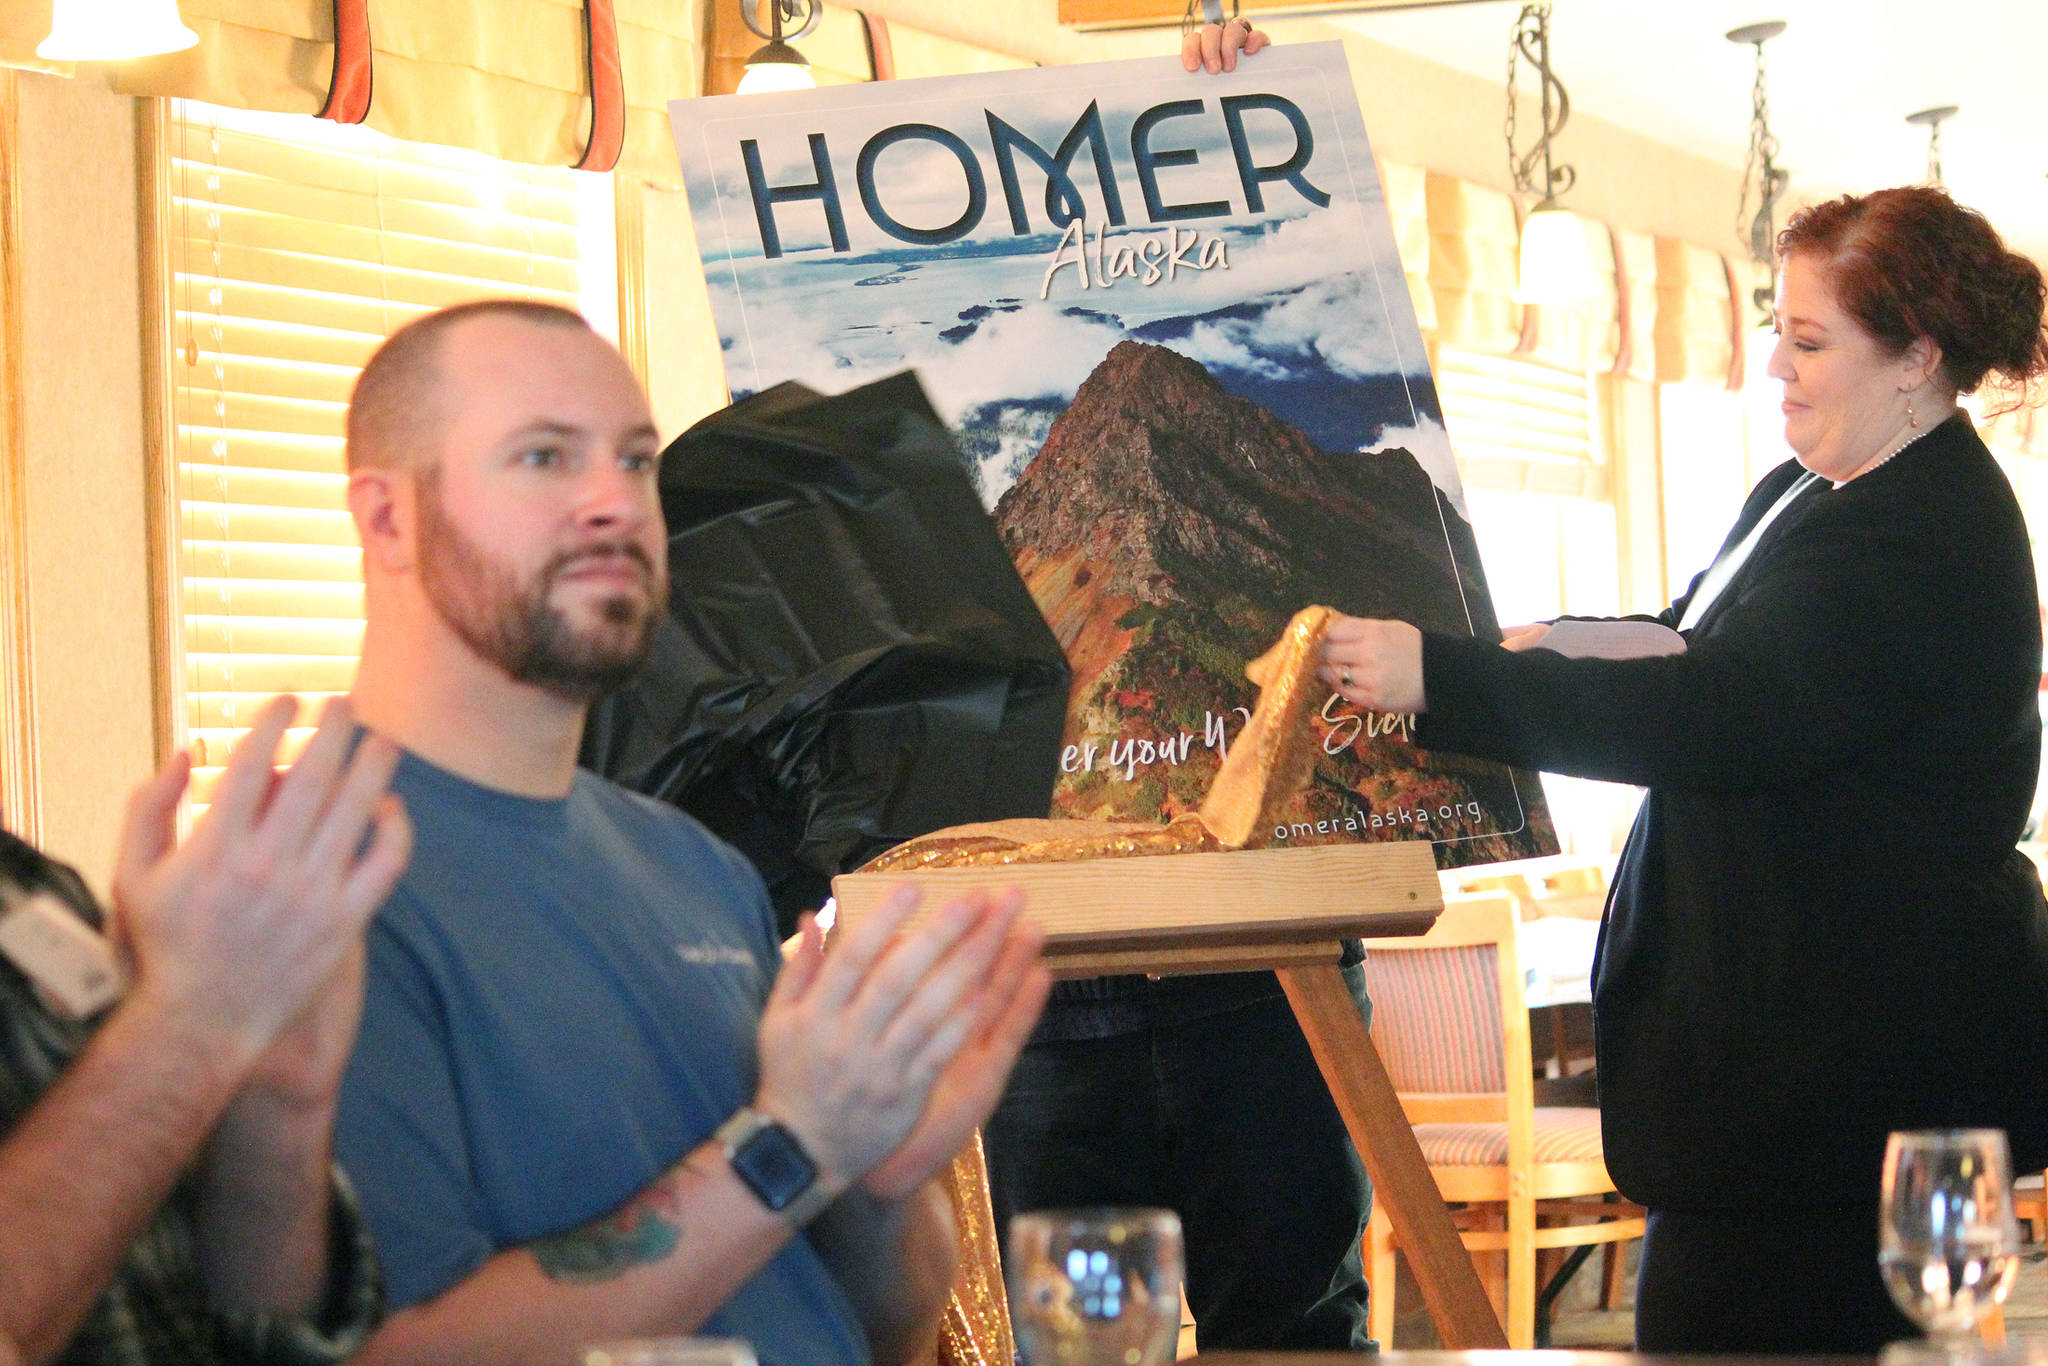 Homer Chamber of Commerce Executive Director Debbie Speakman unveils the winning photo that will grace the cover of the chamber's next visitor guide at a Tuesday, Jan. 15, 2019 annual chamber meeting at the Best Western in Homer, Alaska. Russel Campbell of Wandering Nomad Photography took the photo. (Photo by Megan Pacer/Homer News)